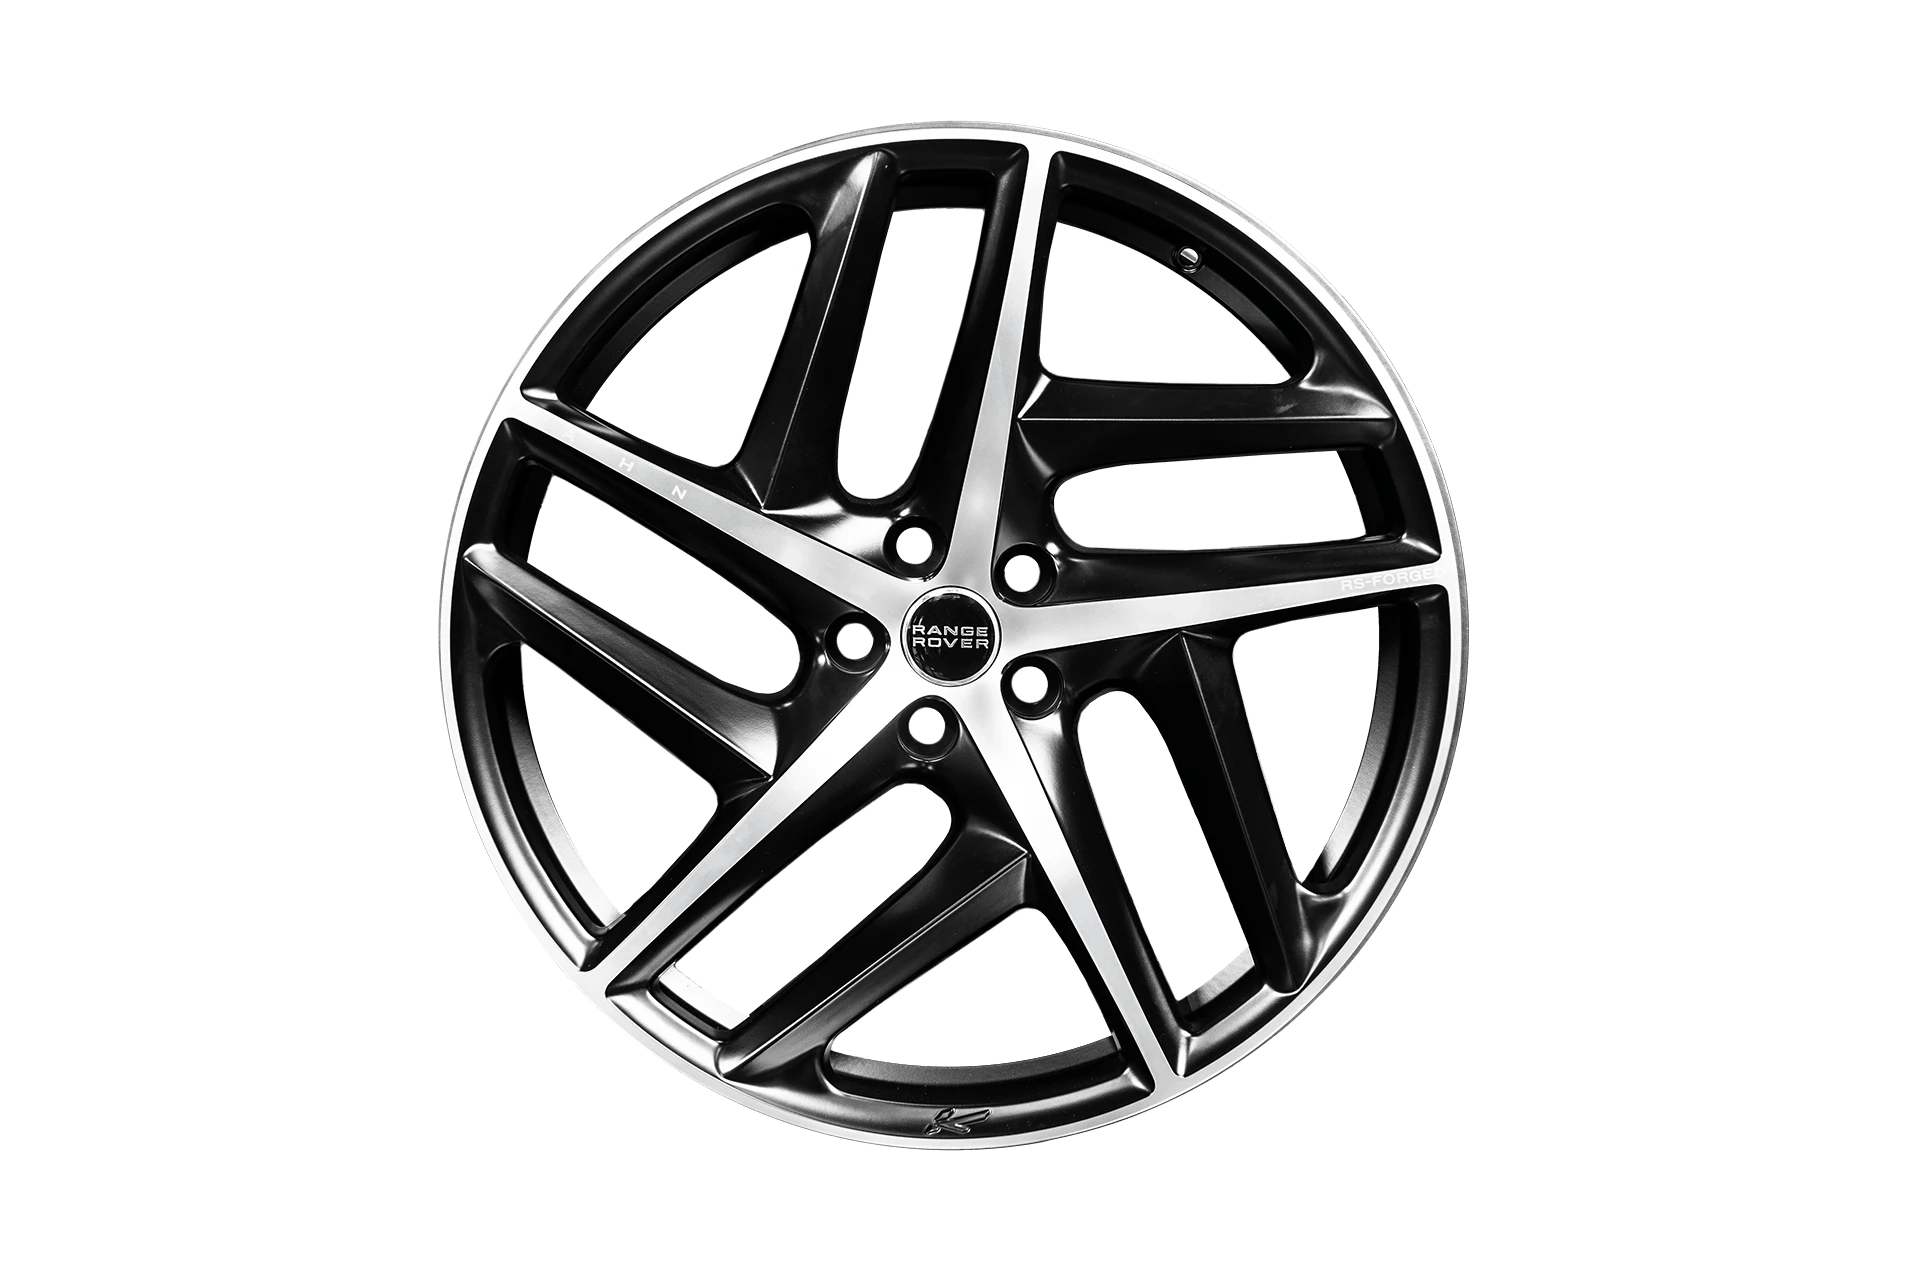 Range Rover (2018-PRESENT) Type 52 RS-Forged Alloy Wheels - Project Kahn